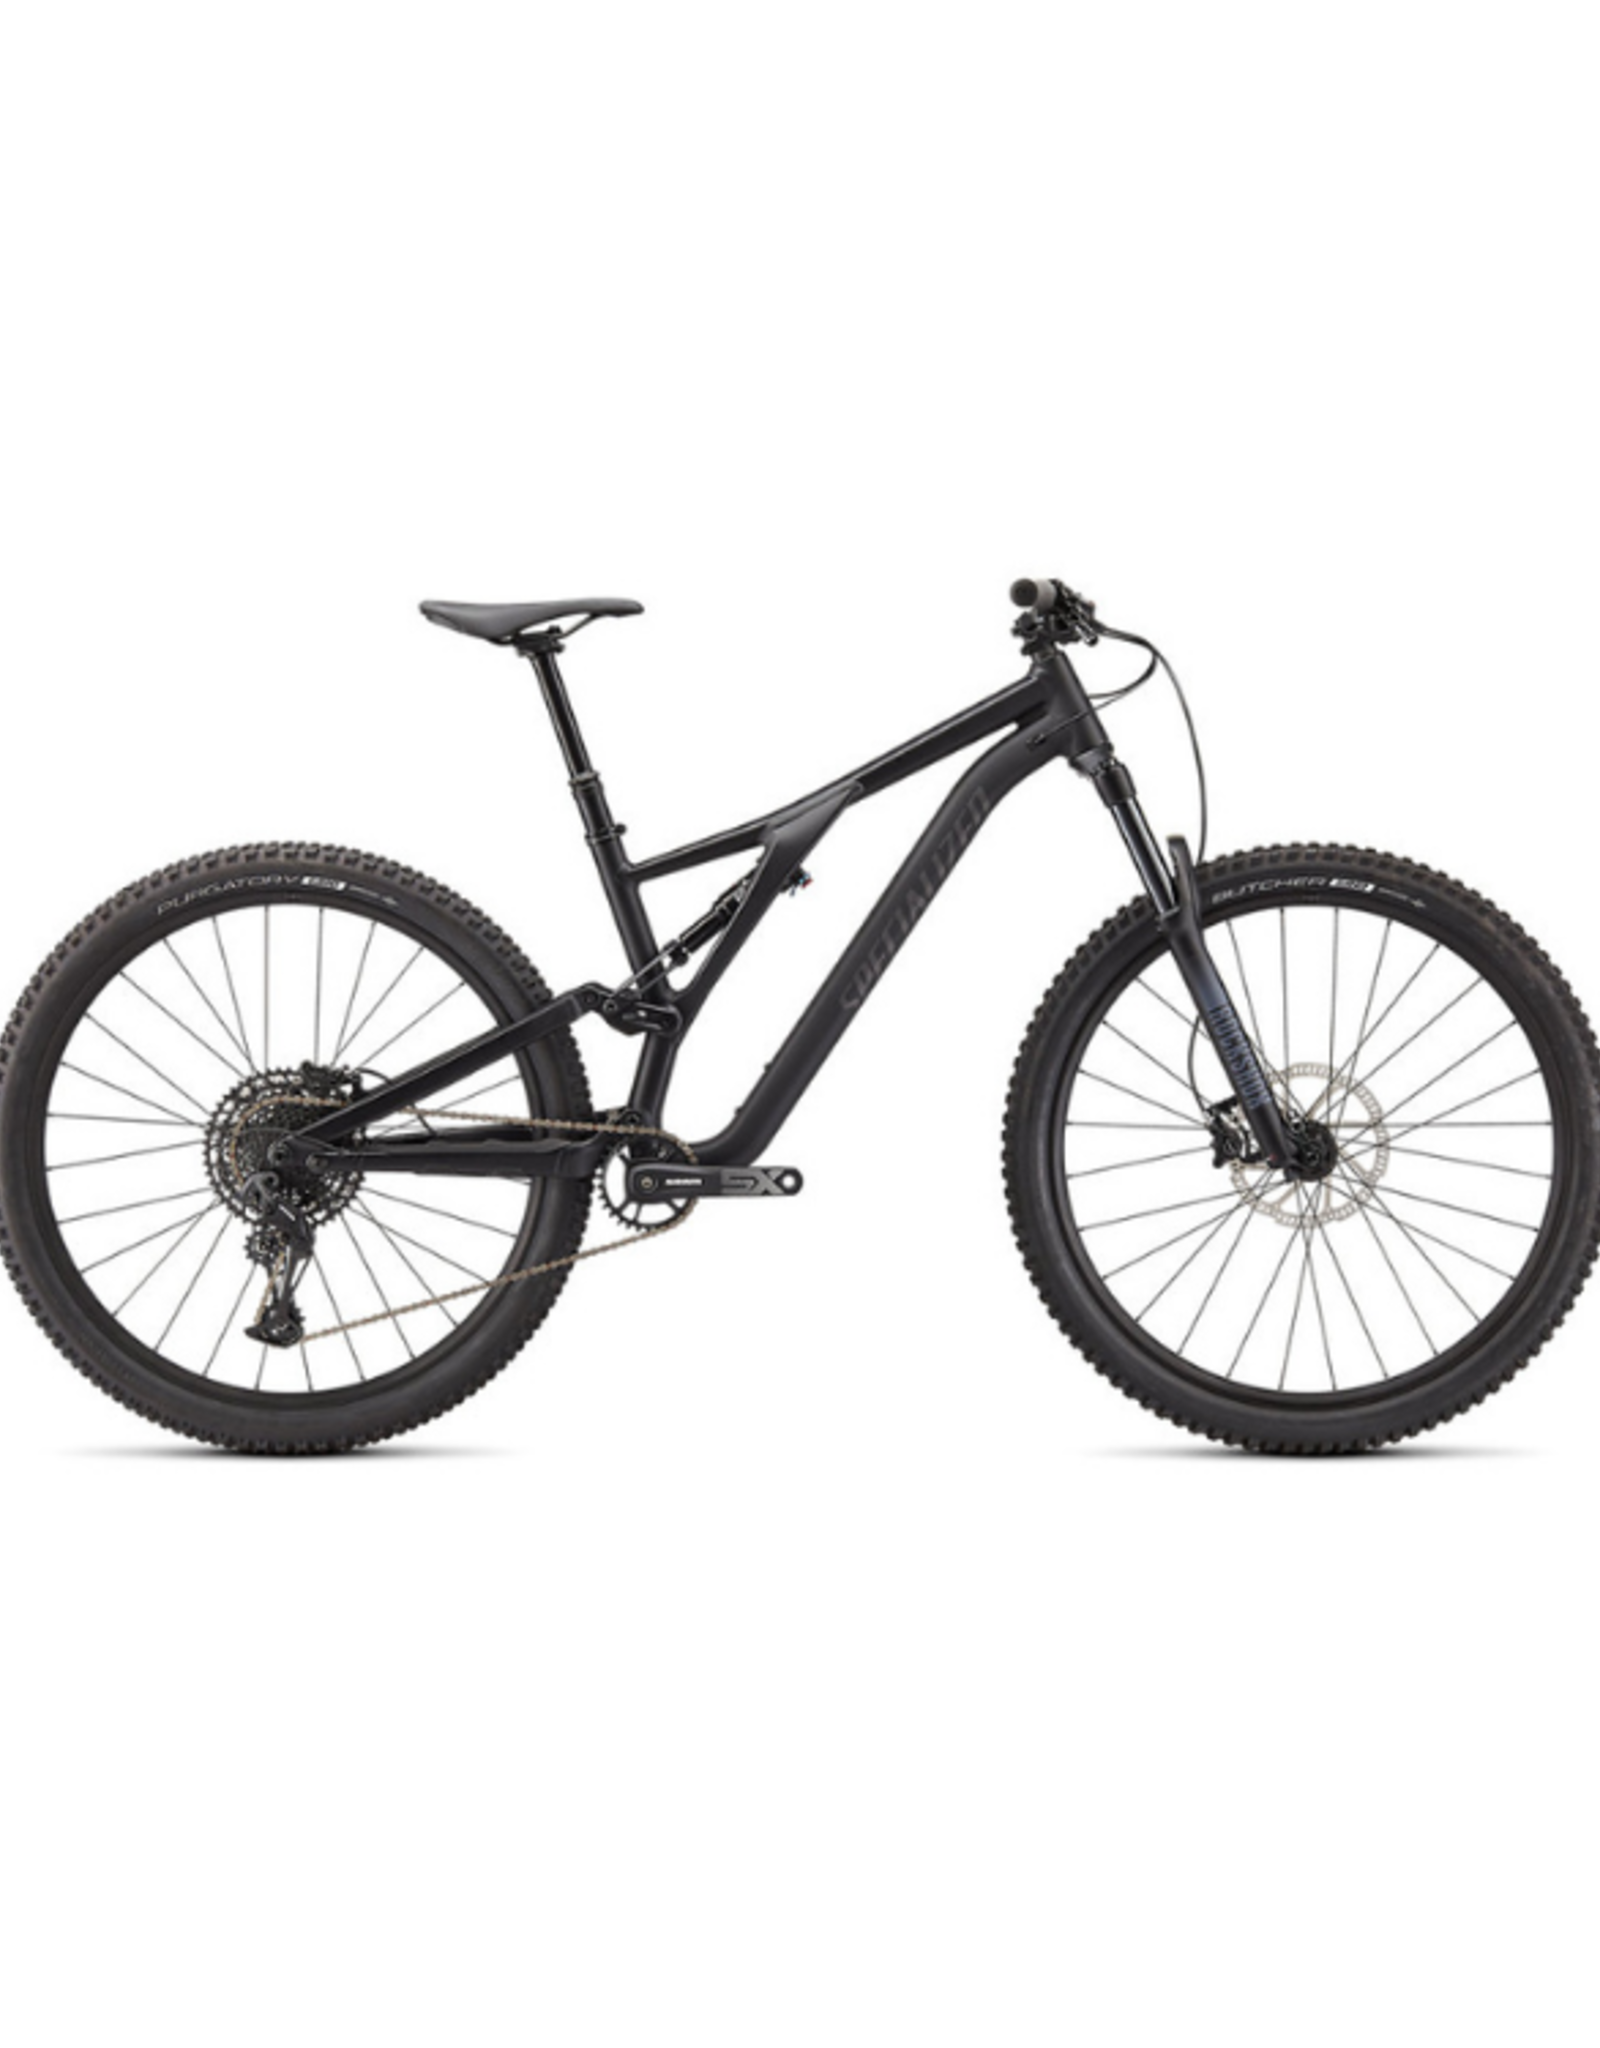 Specialzied 2021 Stumpjumper SJ ALLOY